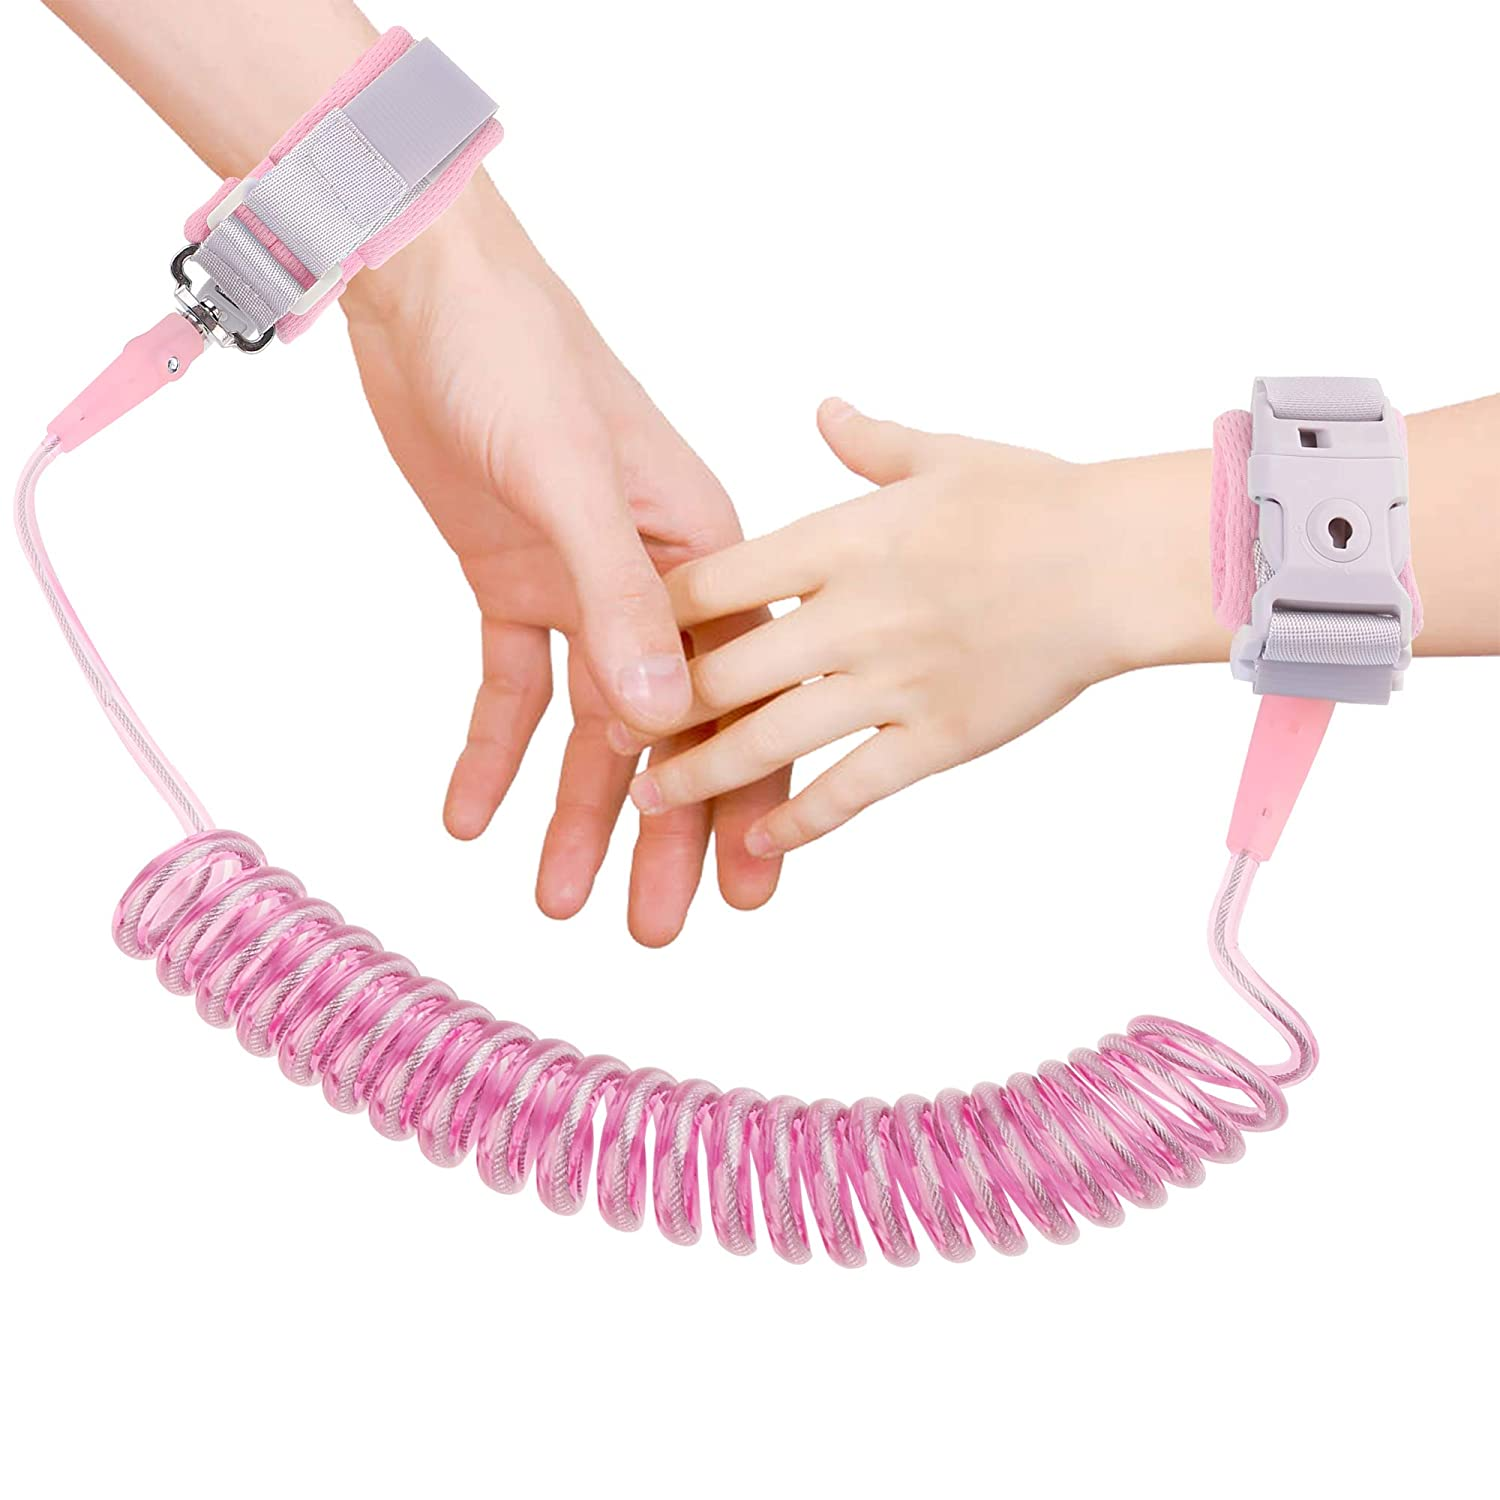 Anti Lost Wrist Link, Toddler Safety Leash with Key Lock, Safety Wrist Leash for Toddlers, Babies & Kids 8.2 feet Pink (red)